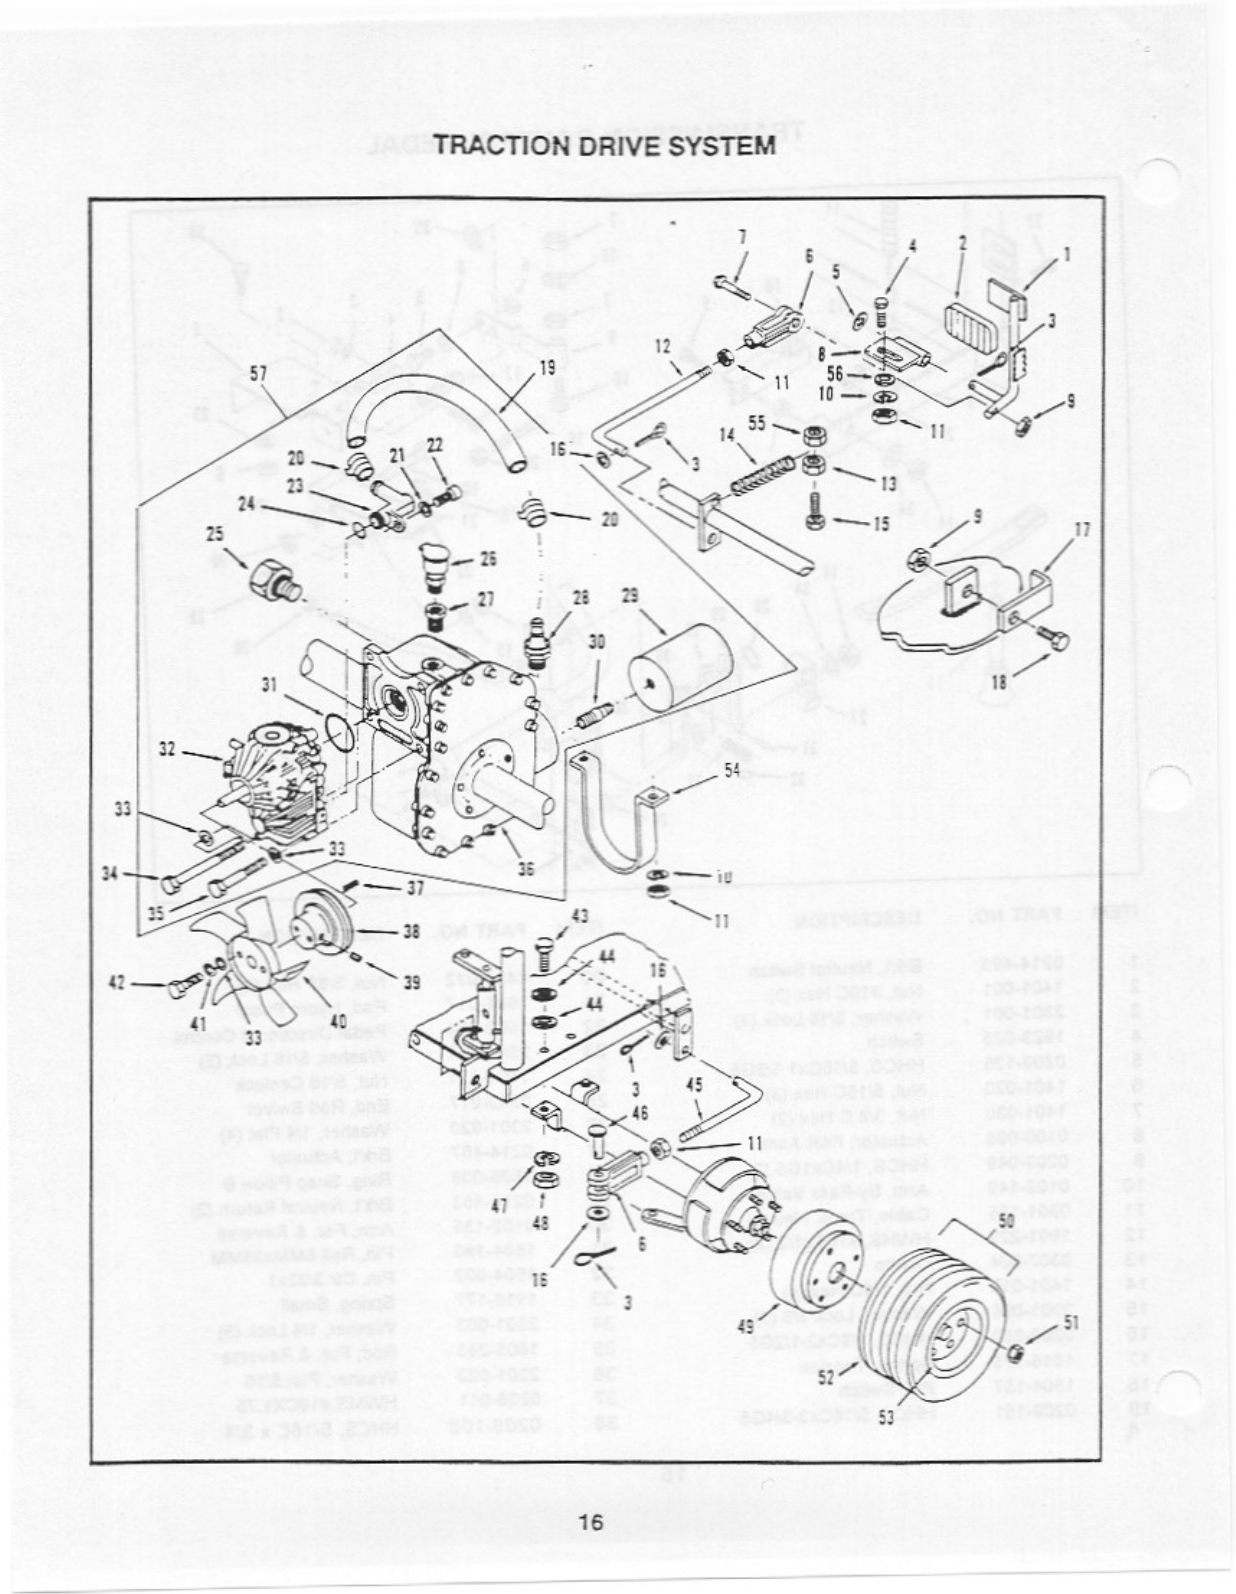 troy bilt ignition switch wiring diagram pdf with Yazoo Mower Wiring Diagram on 488429522059877741 likewise Zt2350 besides 42010 likewise 67 Chevelle Fuel Gauge Wiring Diagram in addition 42 Inch Murray Riding Lawn Mower Wiring Diagram.